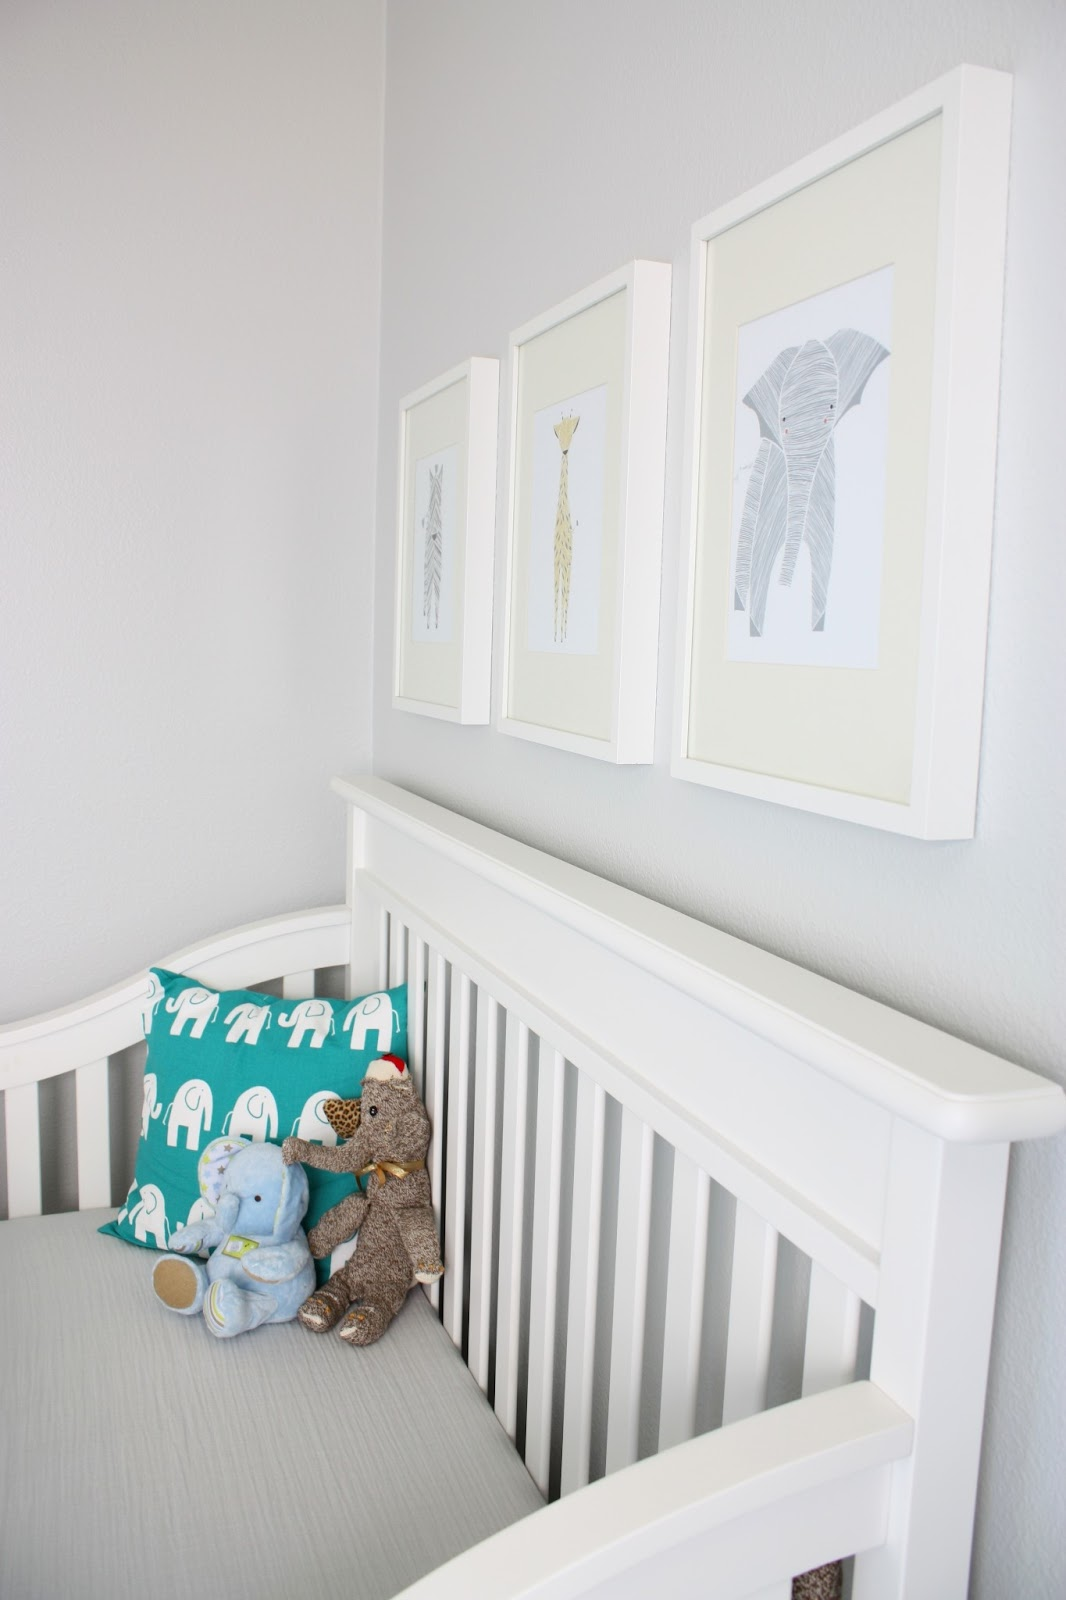 Ikea Ribba Picture Ledge Love Life And My Journey Nursery Source List